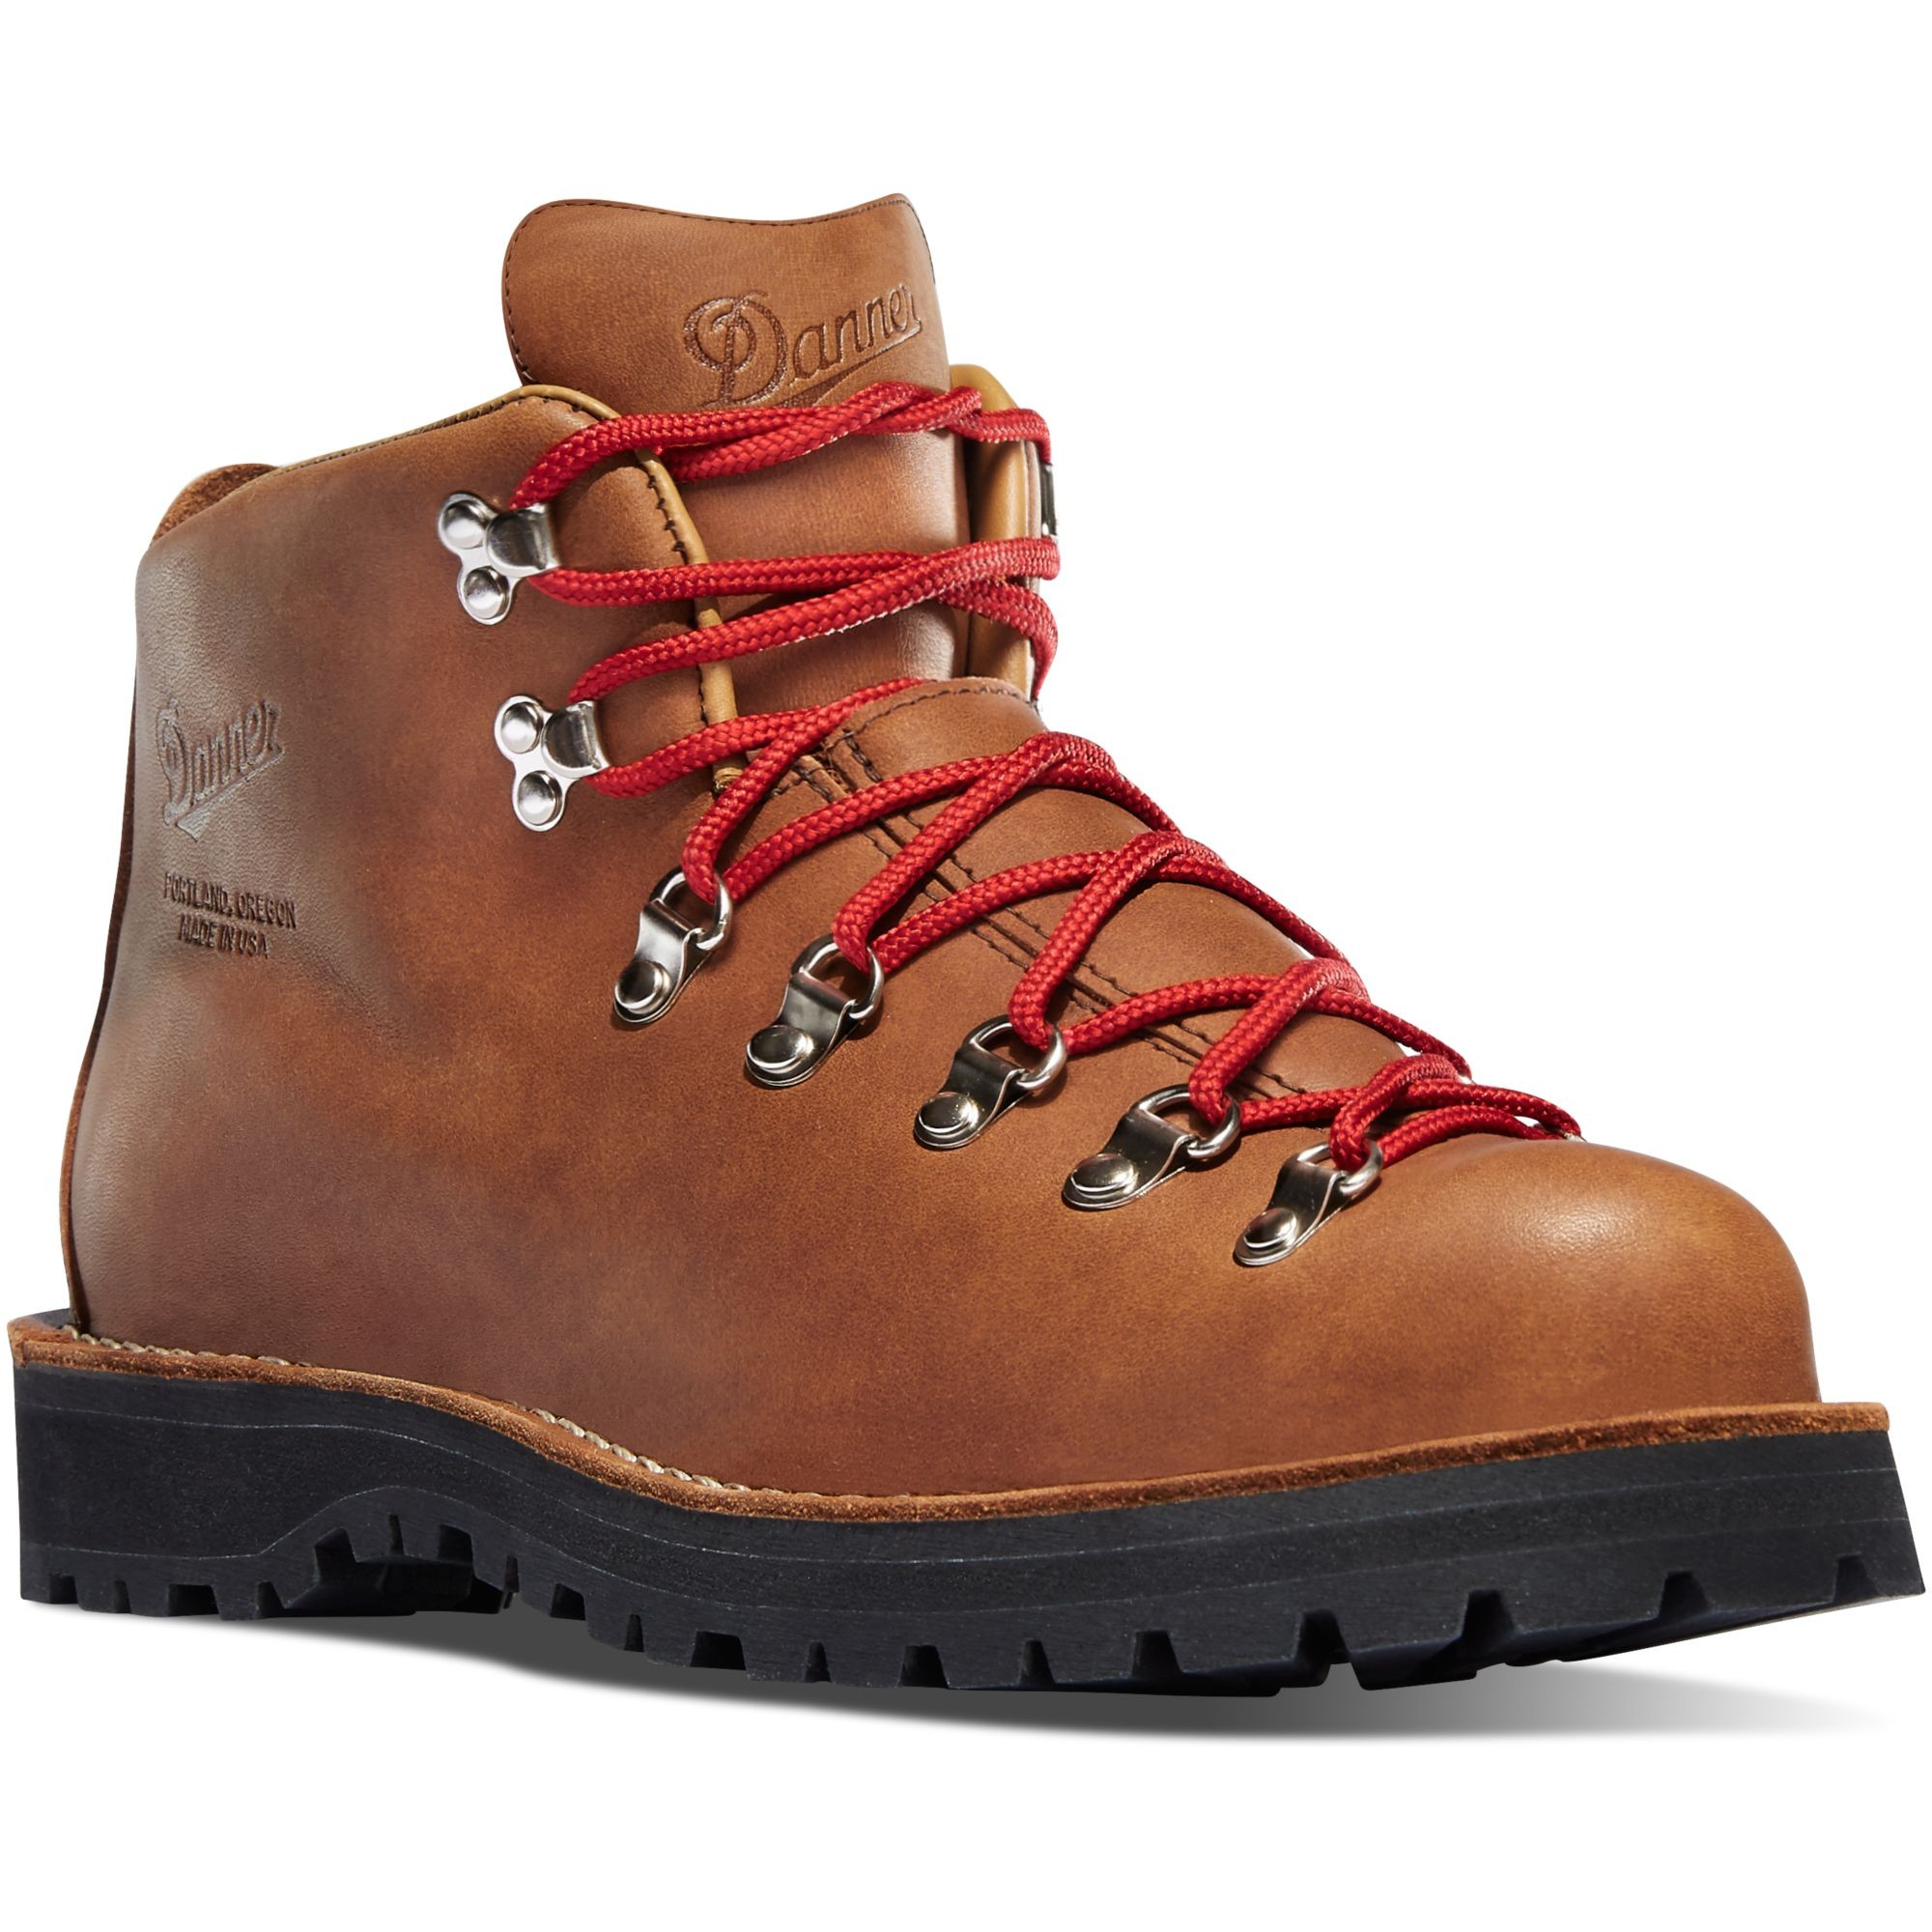 Danner Mountain Light Hiking Boot : Cascade Clovis